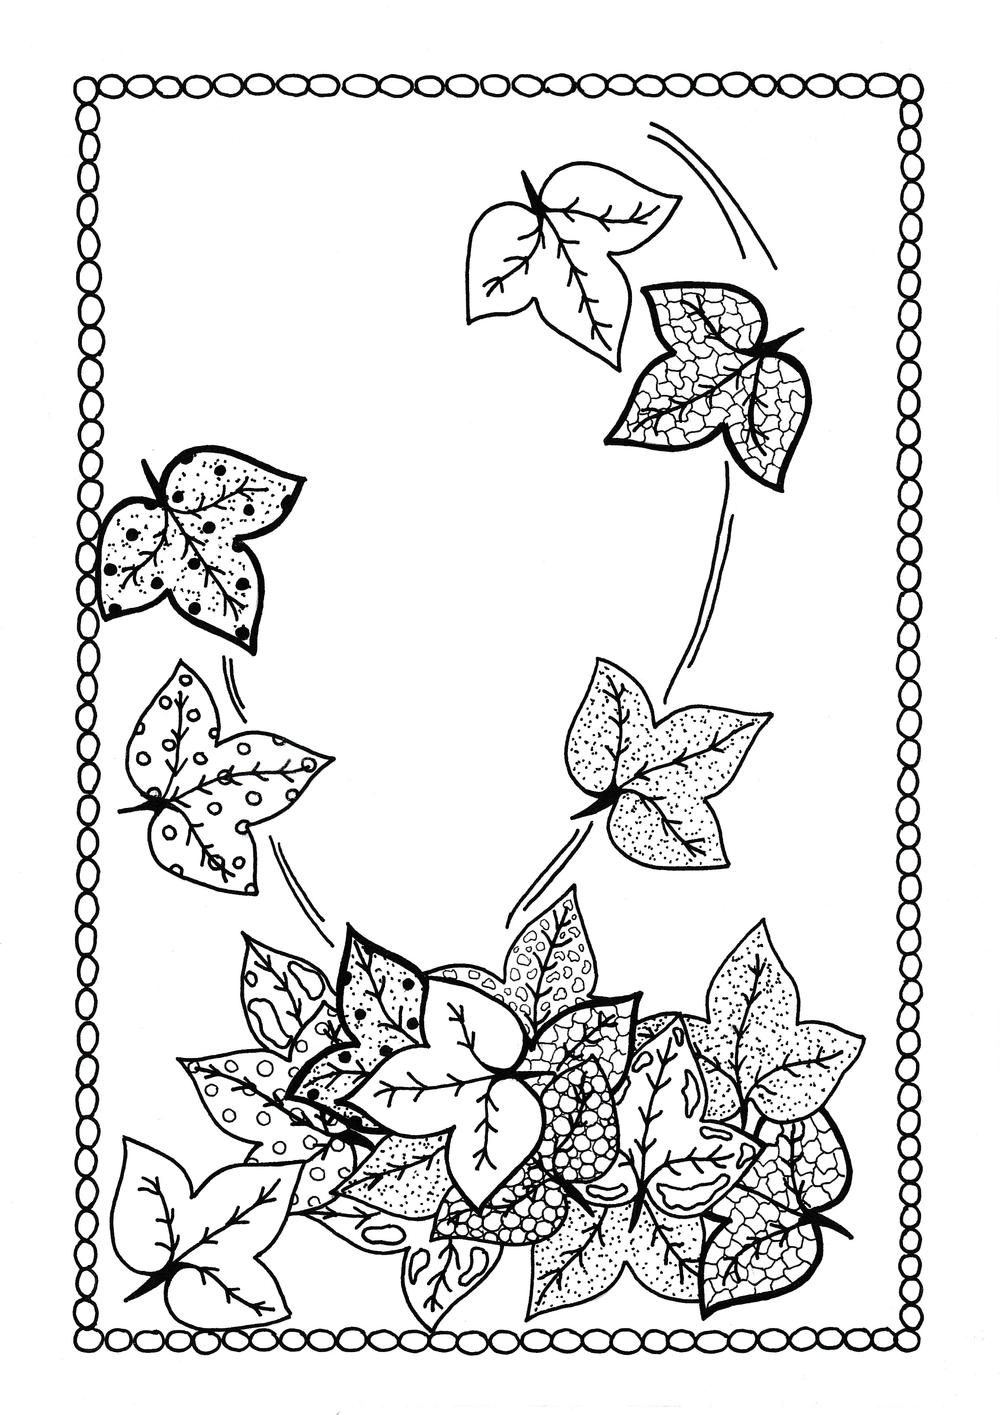 Windswept Autumn Leaves Fall Coloring Sheet